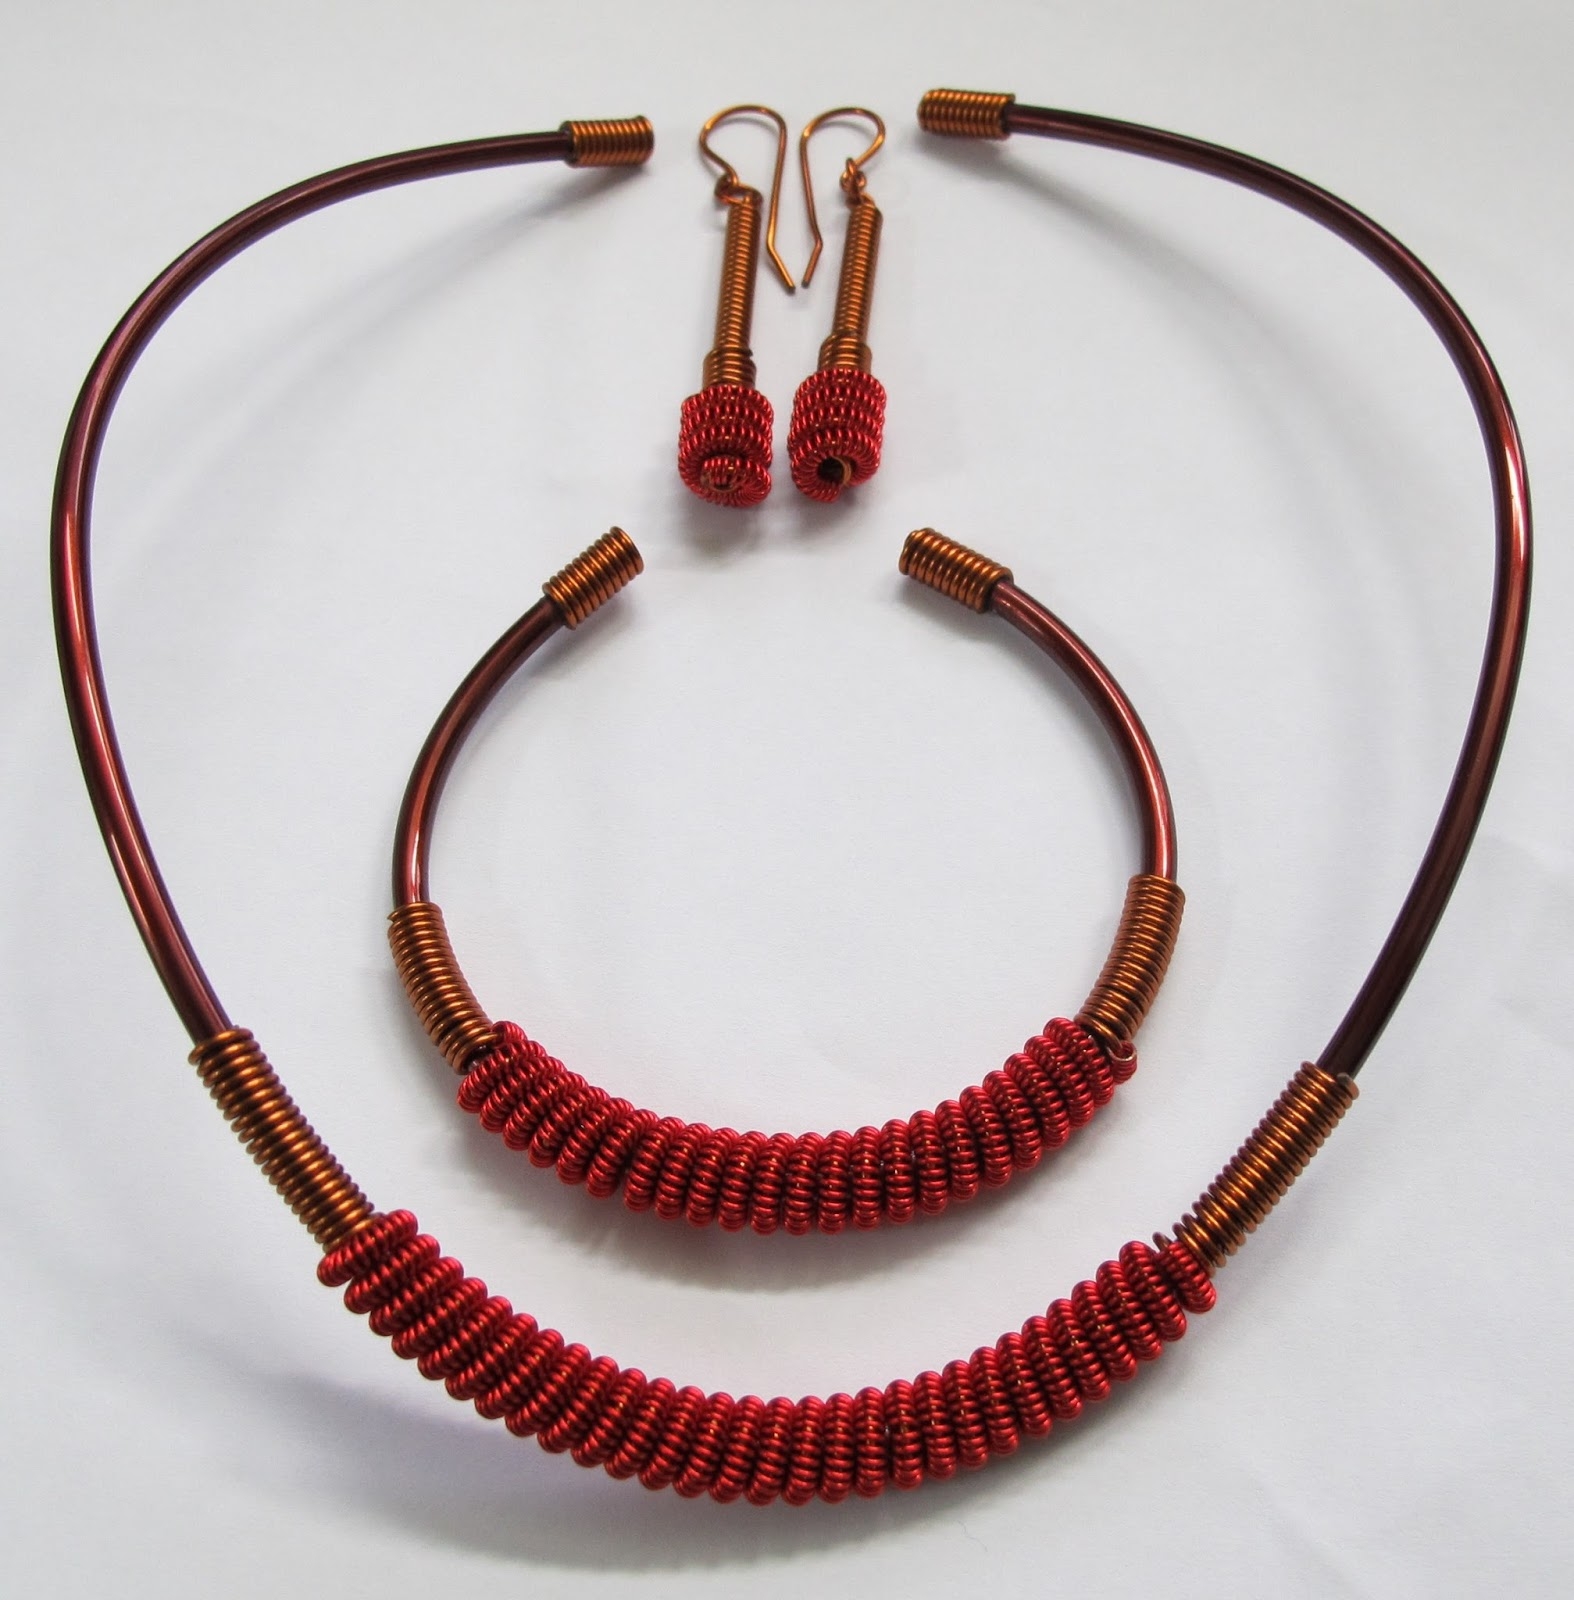 Wire jewelry—Copper and red wire necklace I made during a class.